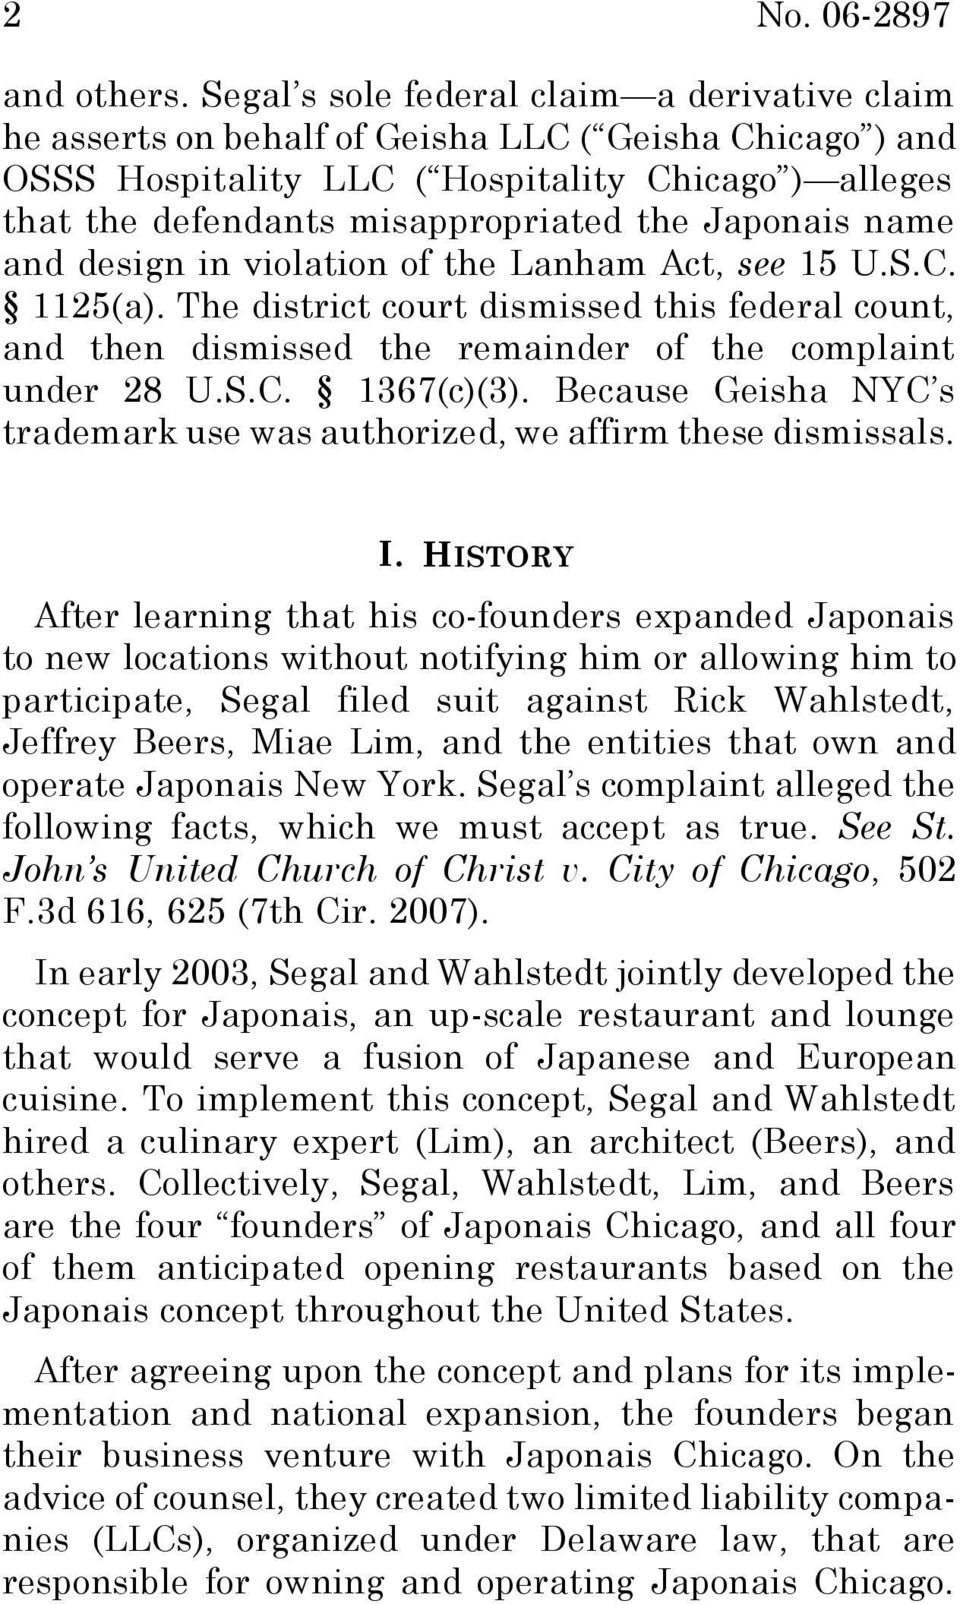 Japonais name and design in violation of the Lanham Act, see 15 U.S.C. 1125(a). The district court dismissed this federal count, and then dismissed the remainder of the complaint under 28 U.S.C. 1367(c)(3).